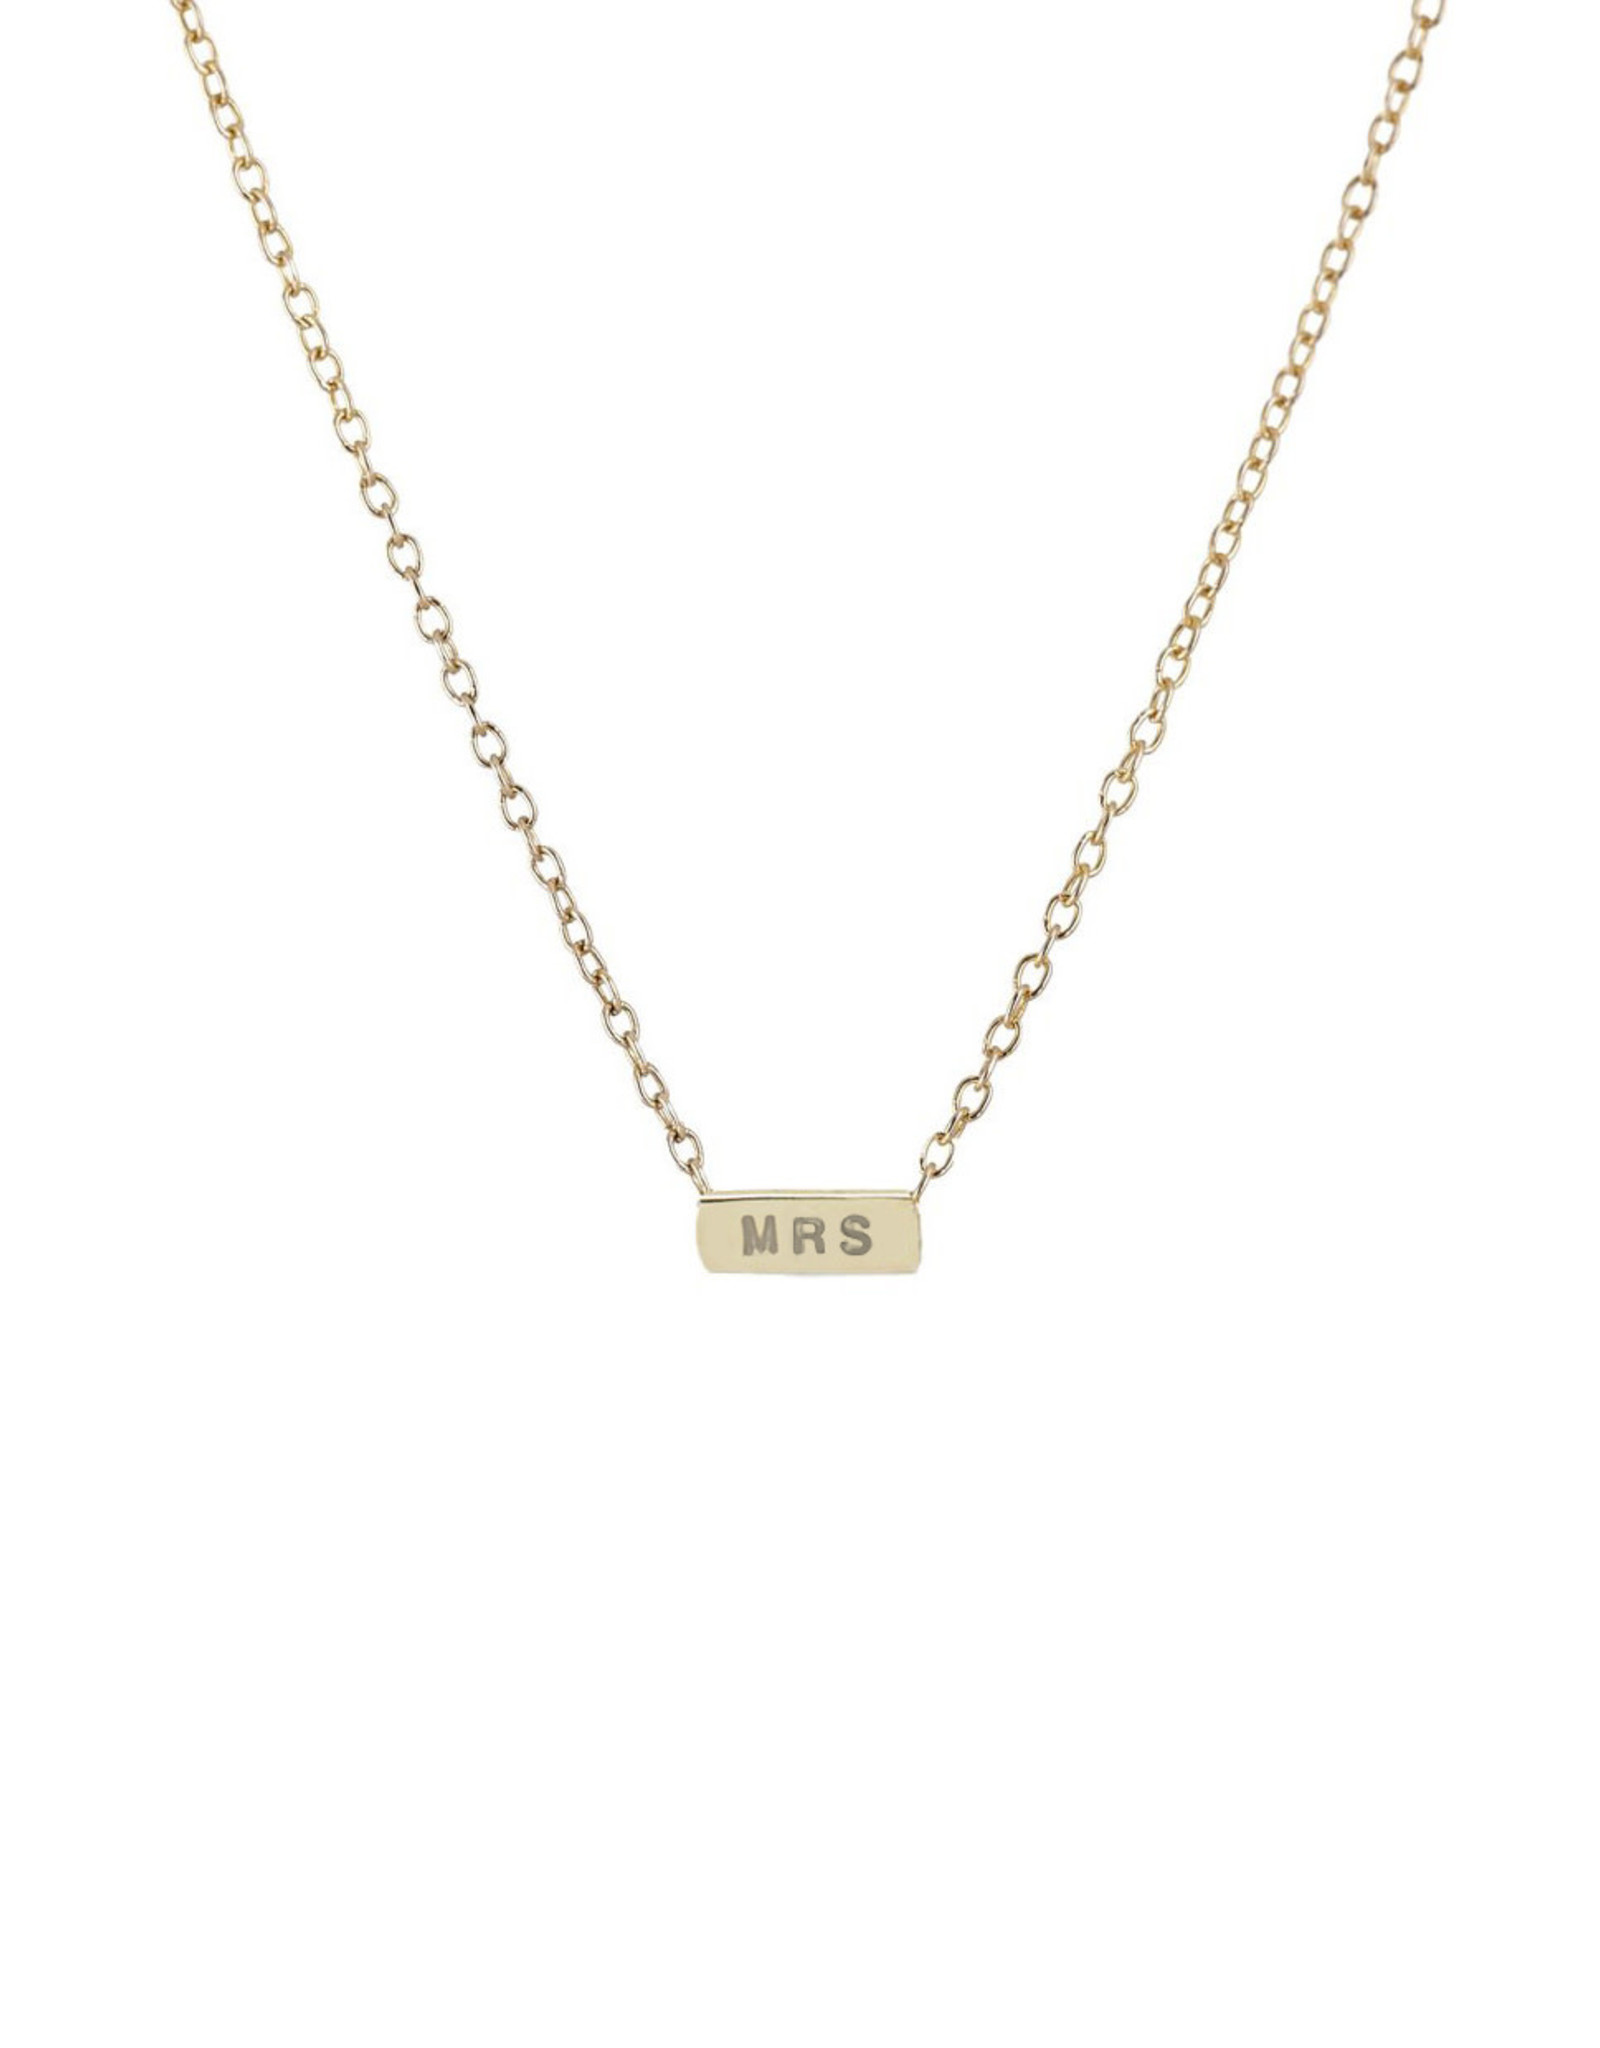 Scosha 'MRS' Necklace - Gold